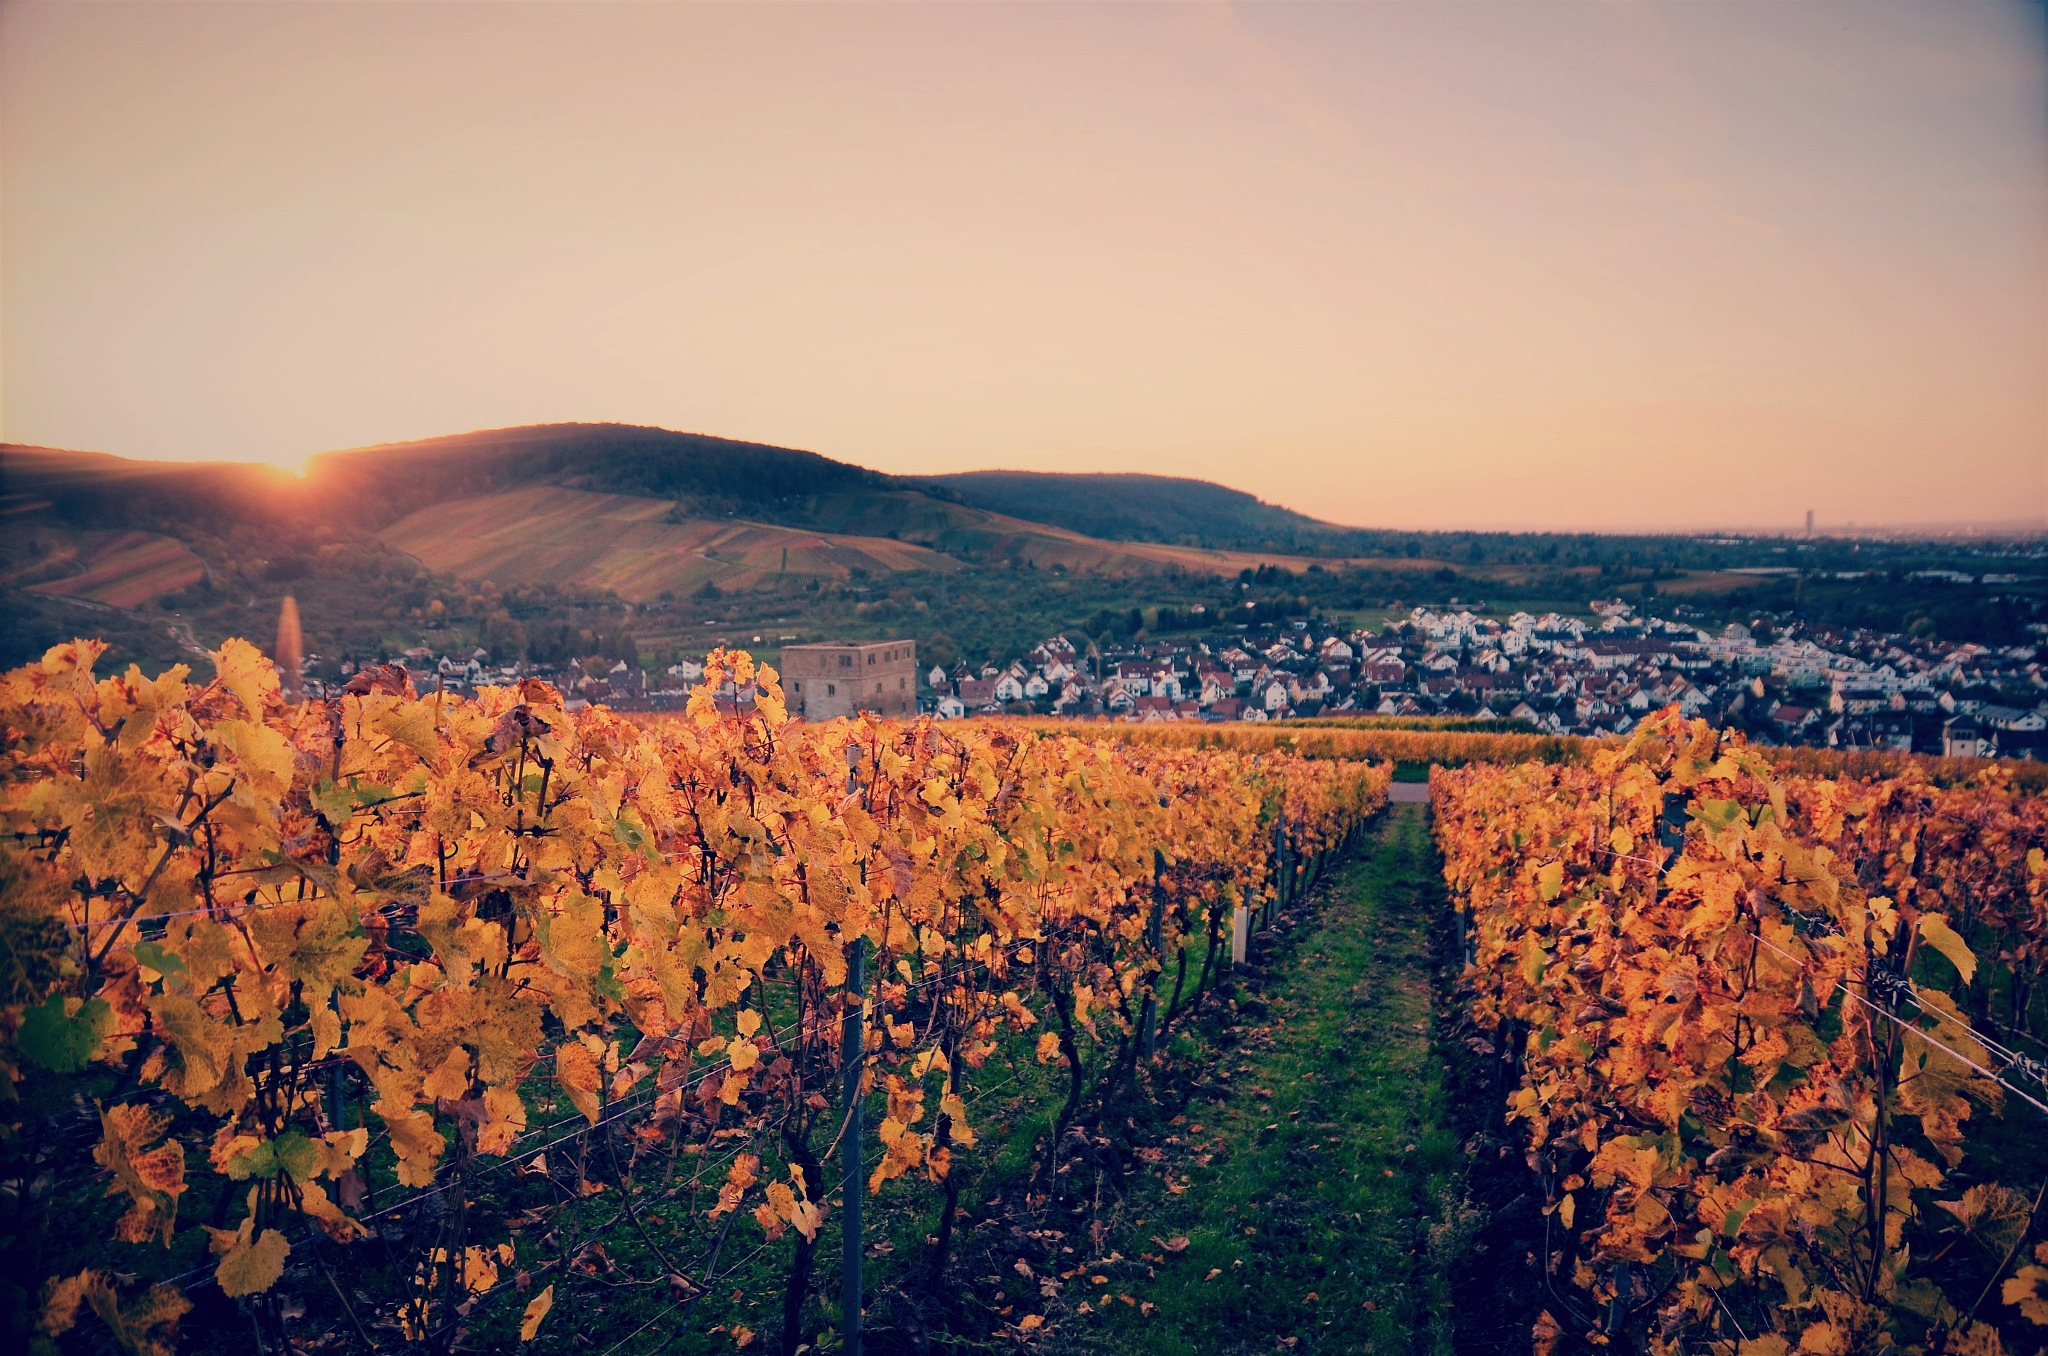 Sunset in the Vineyards  by Stoica Emilian